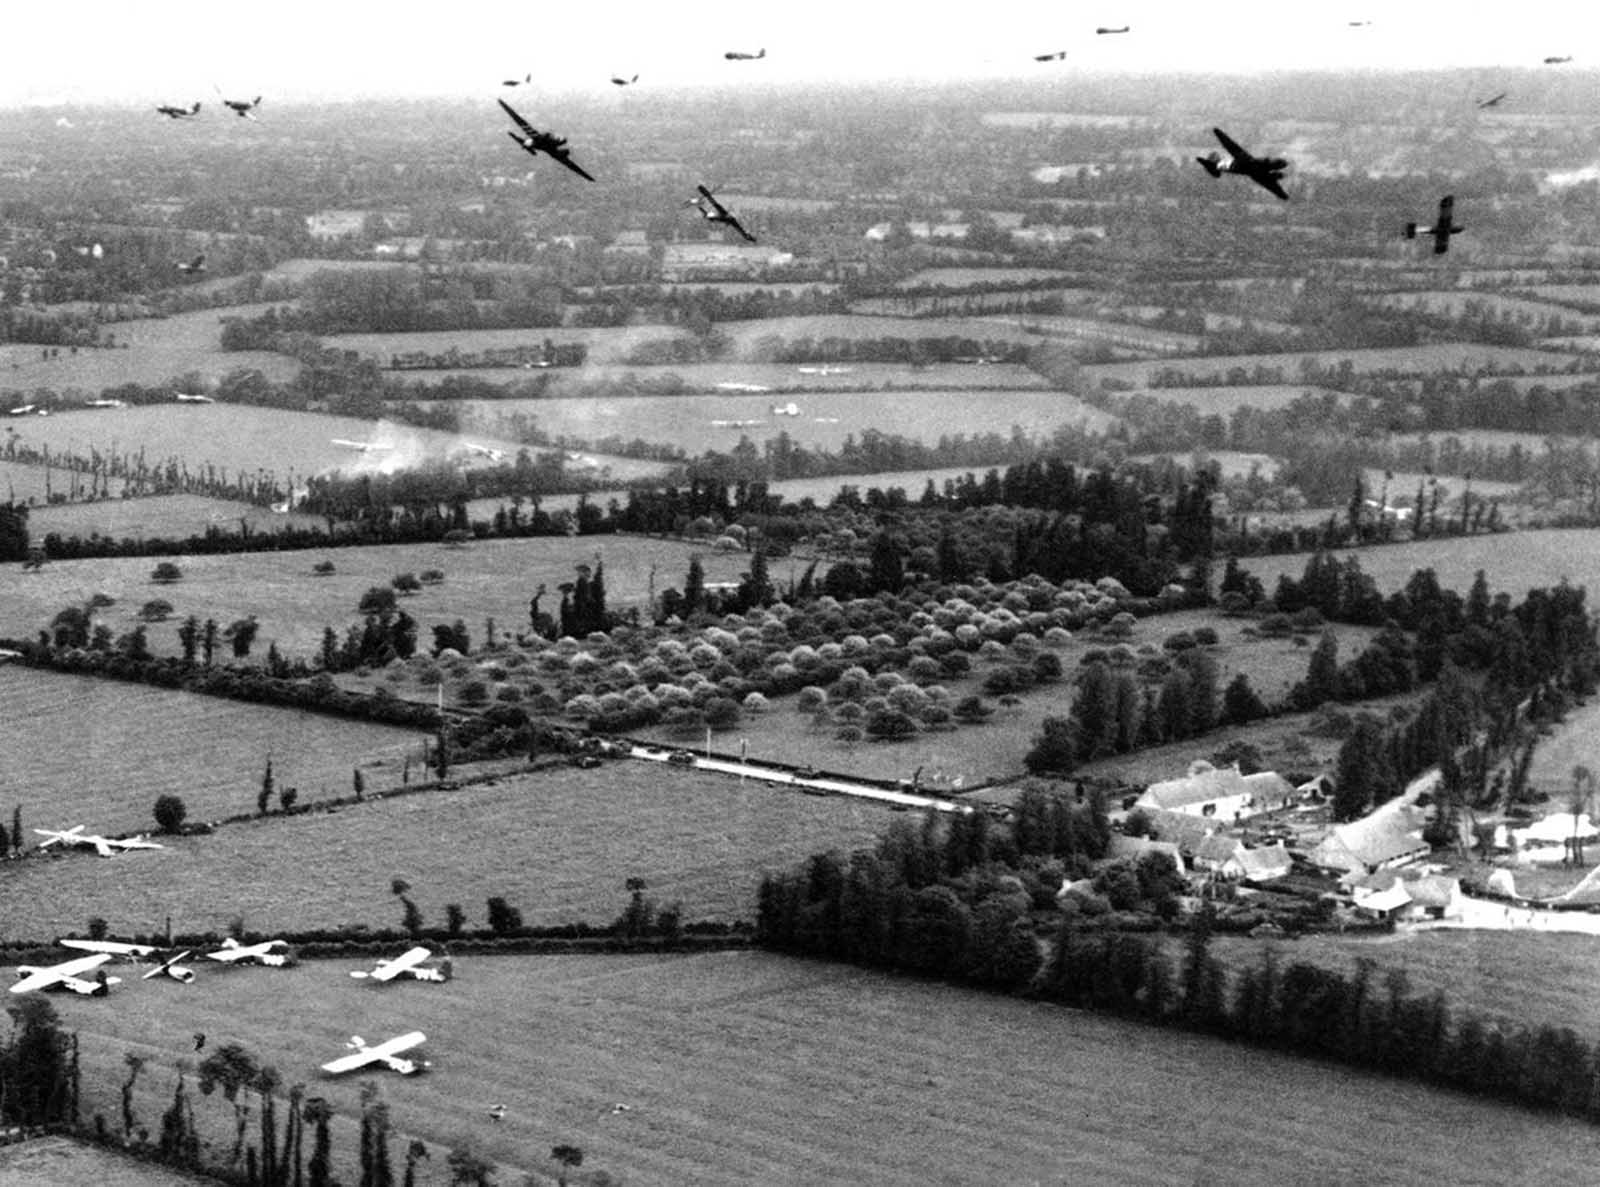 Tow planes and gliders above the French countryside during the Normandy invasion in June of 1944, at an objective of the U.S. Army Ninth Air Force. Gliders and two planes are circling and many gliders have landed in fields below.